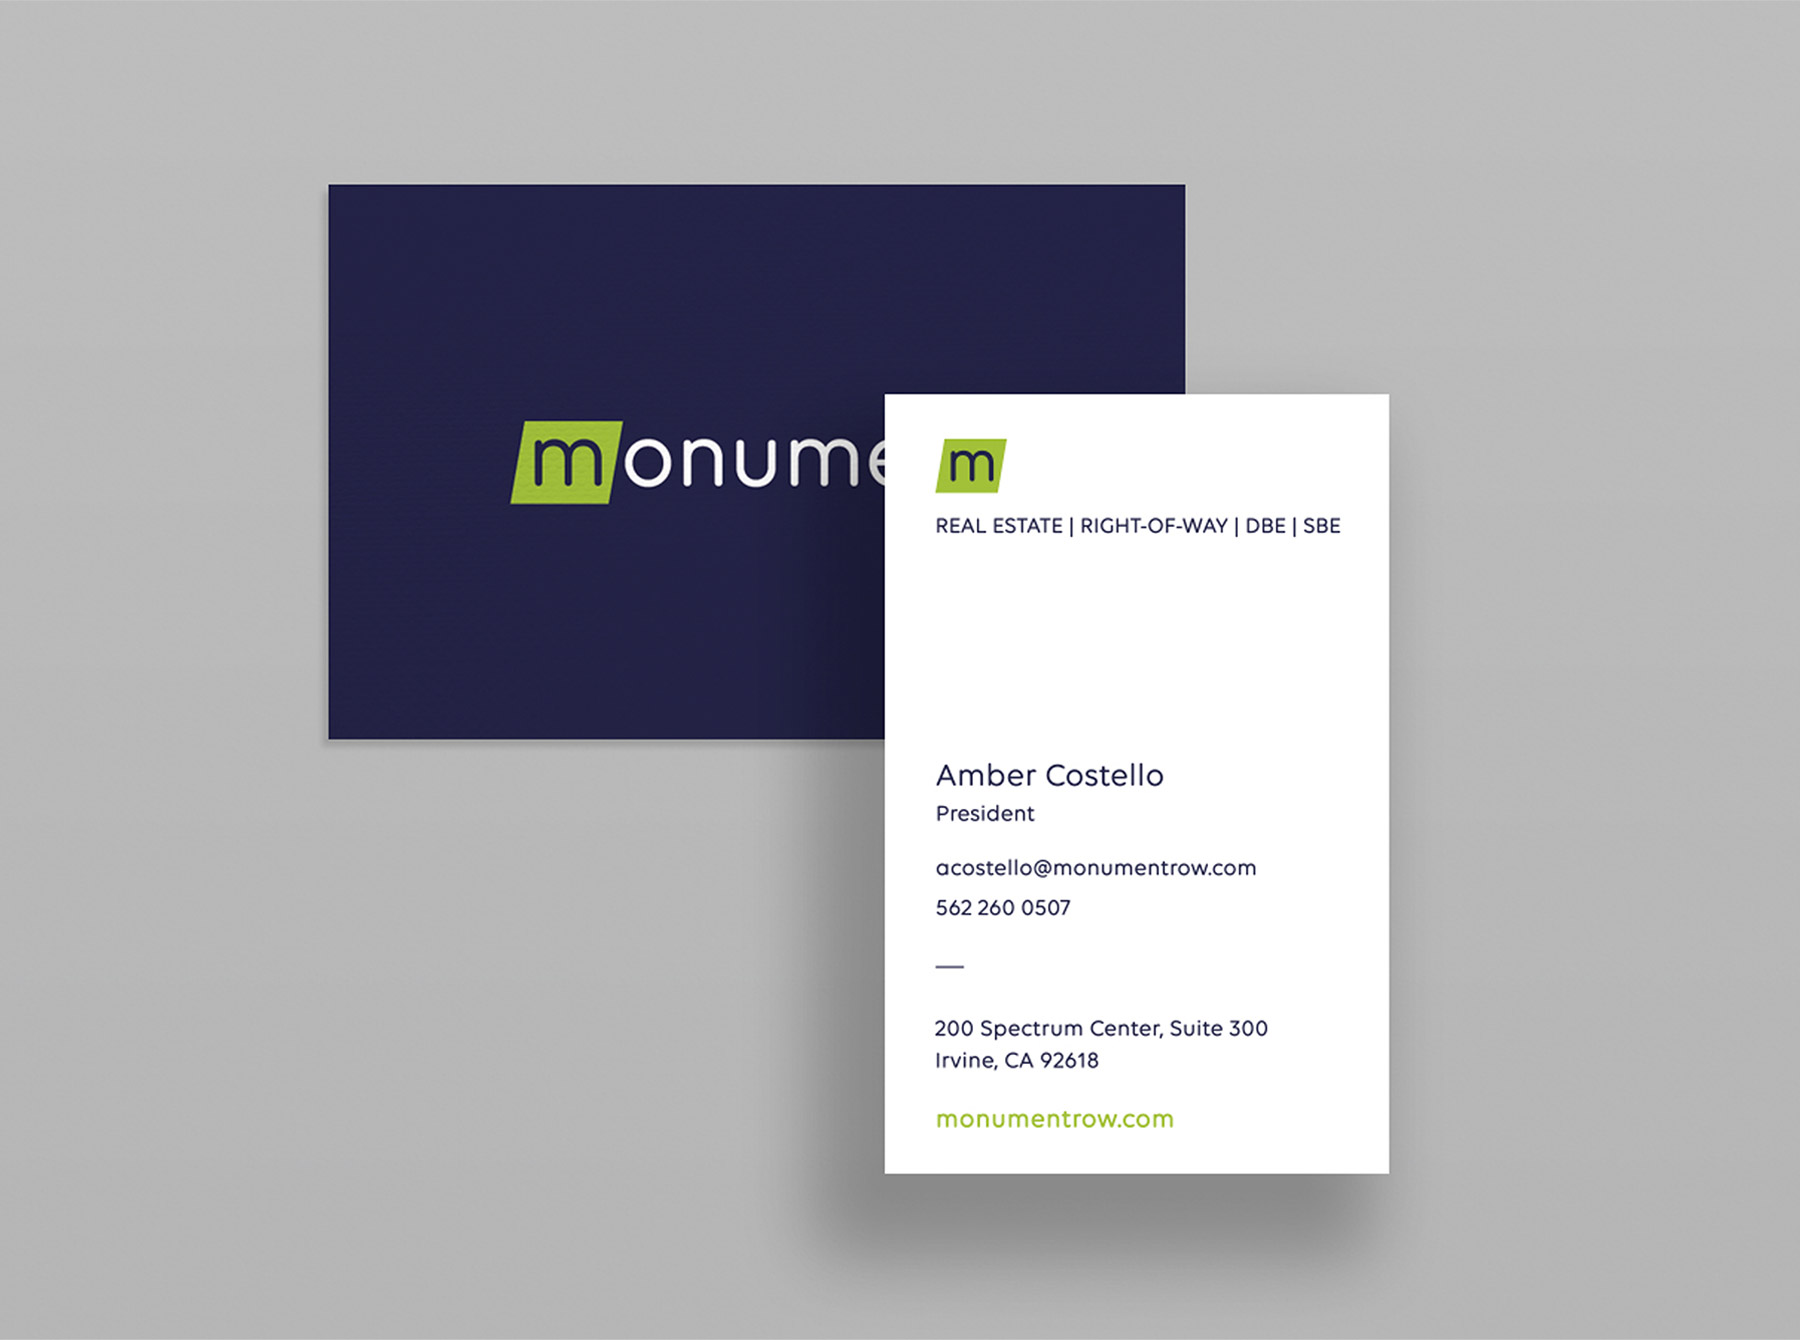 Monument business card